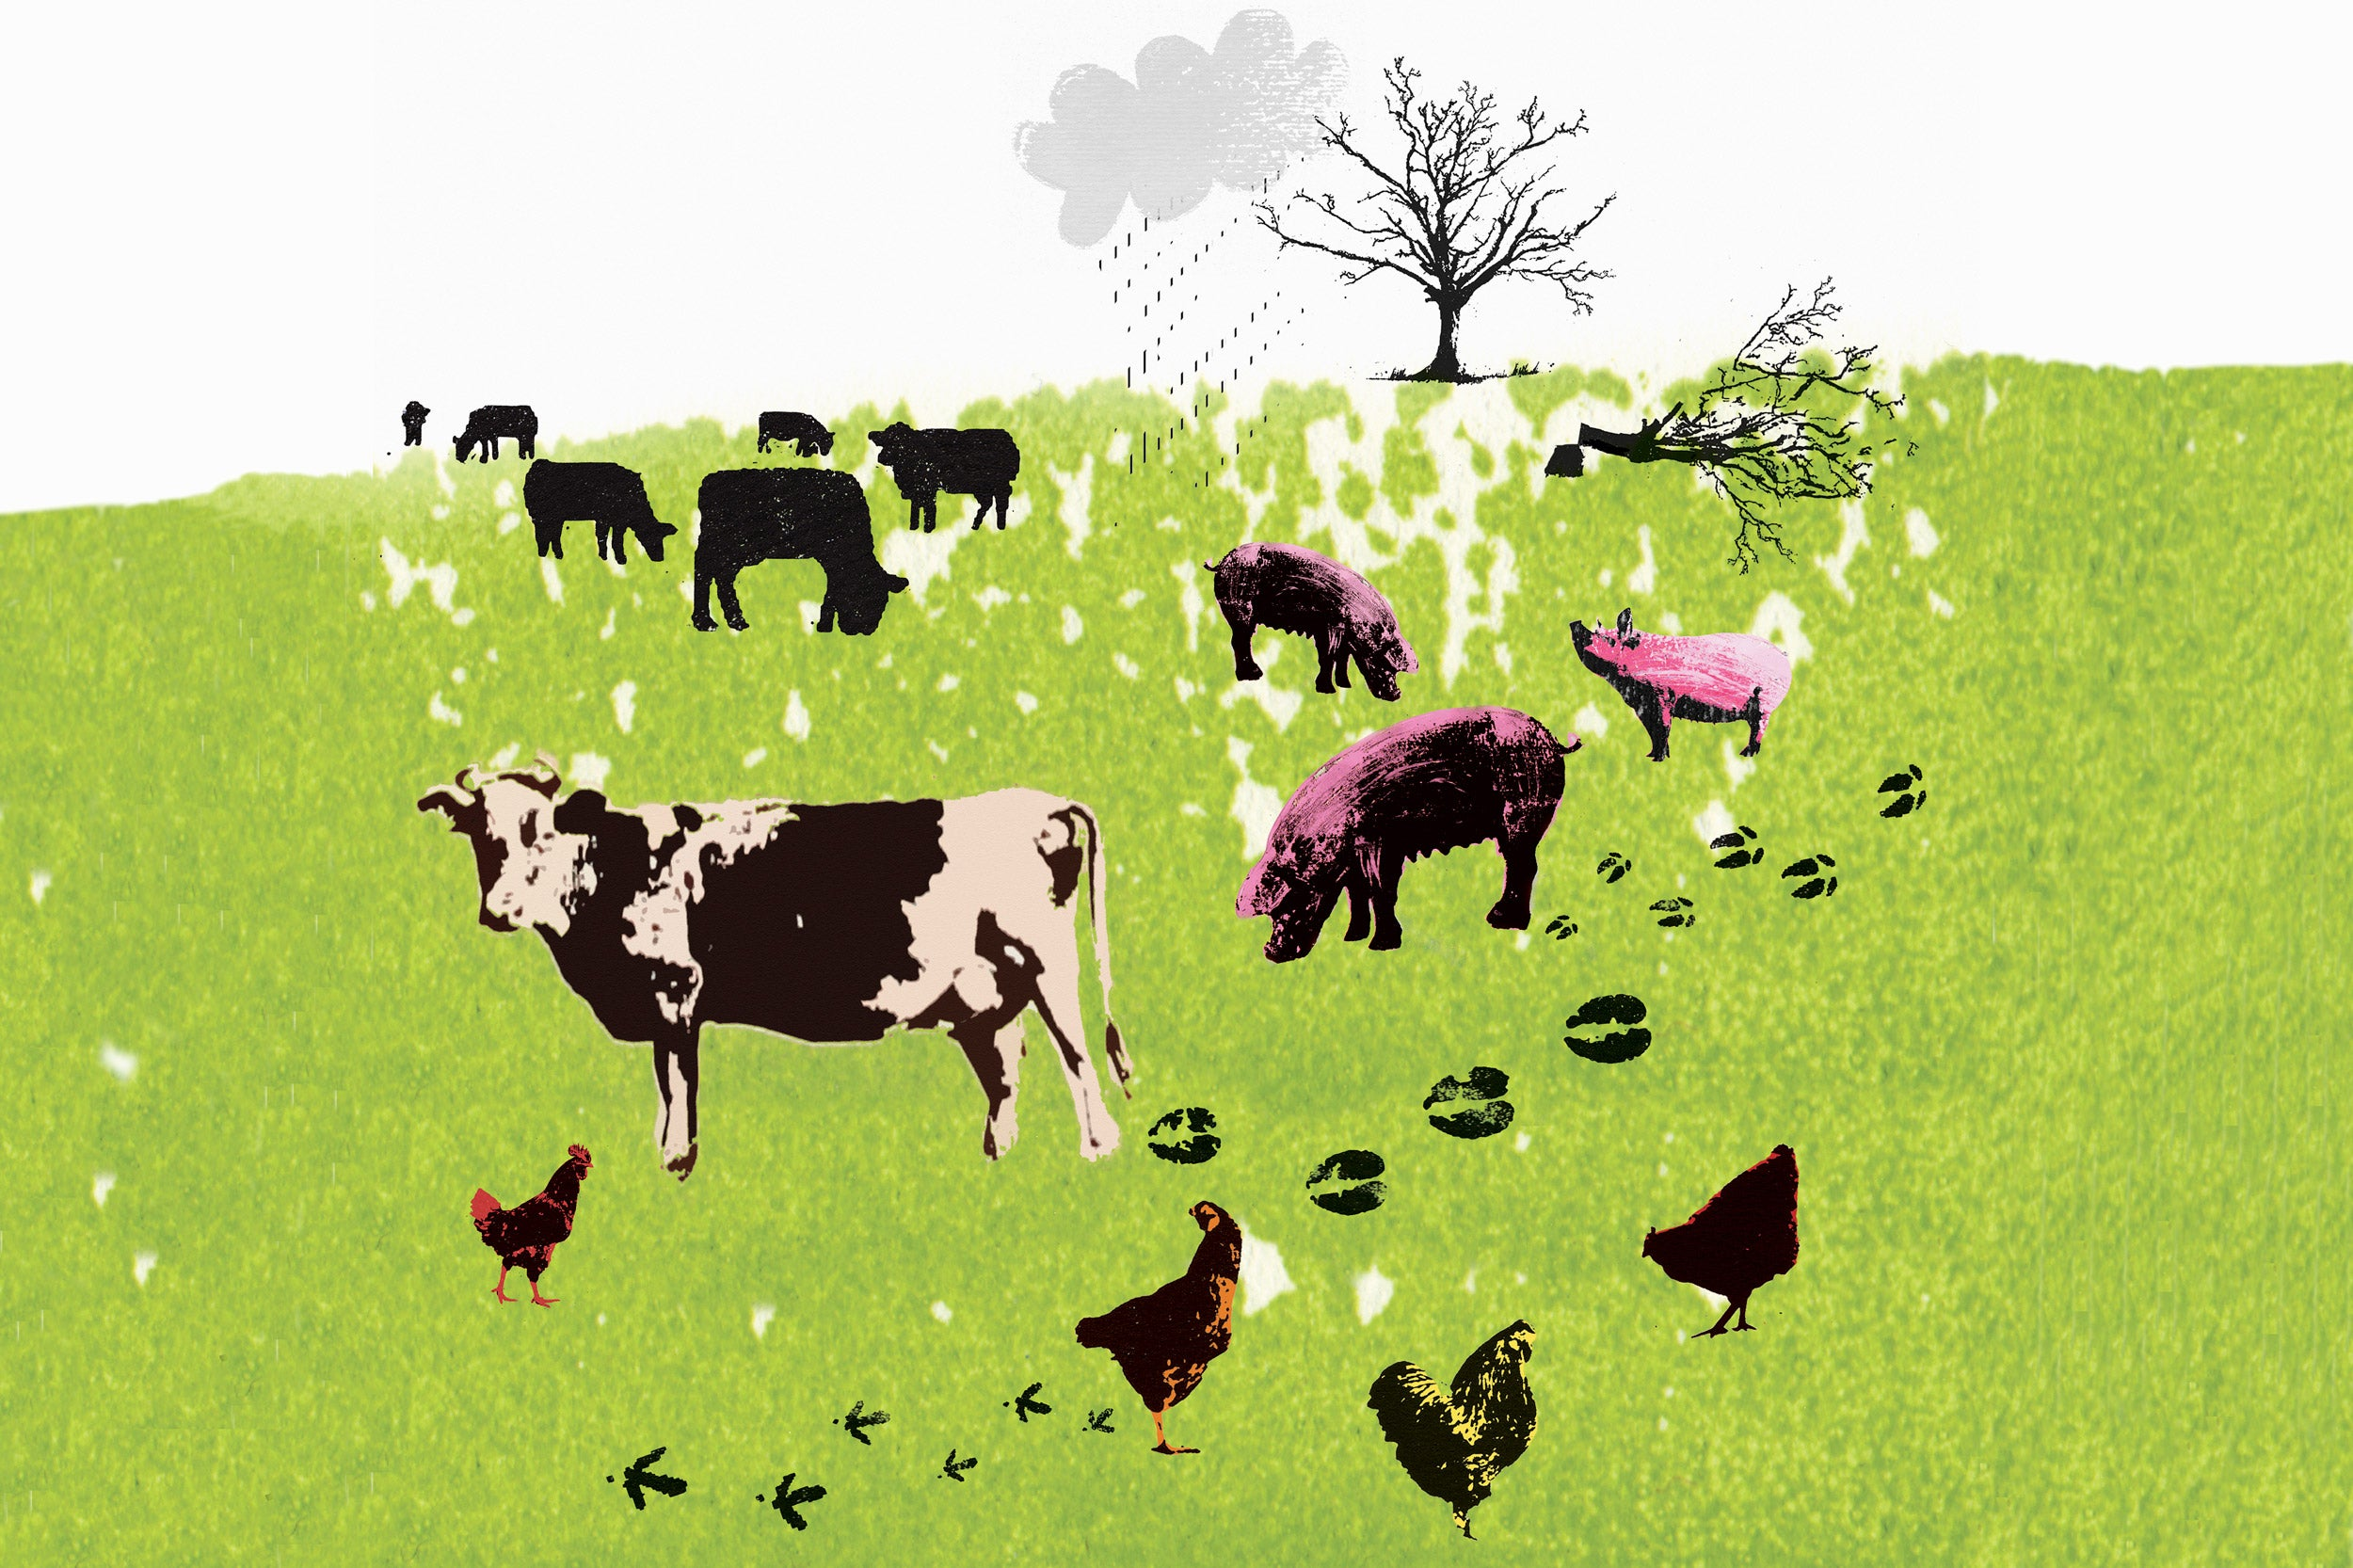 Illustration of farm animals in a field.